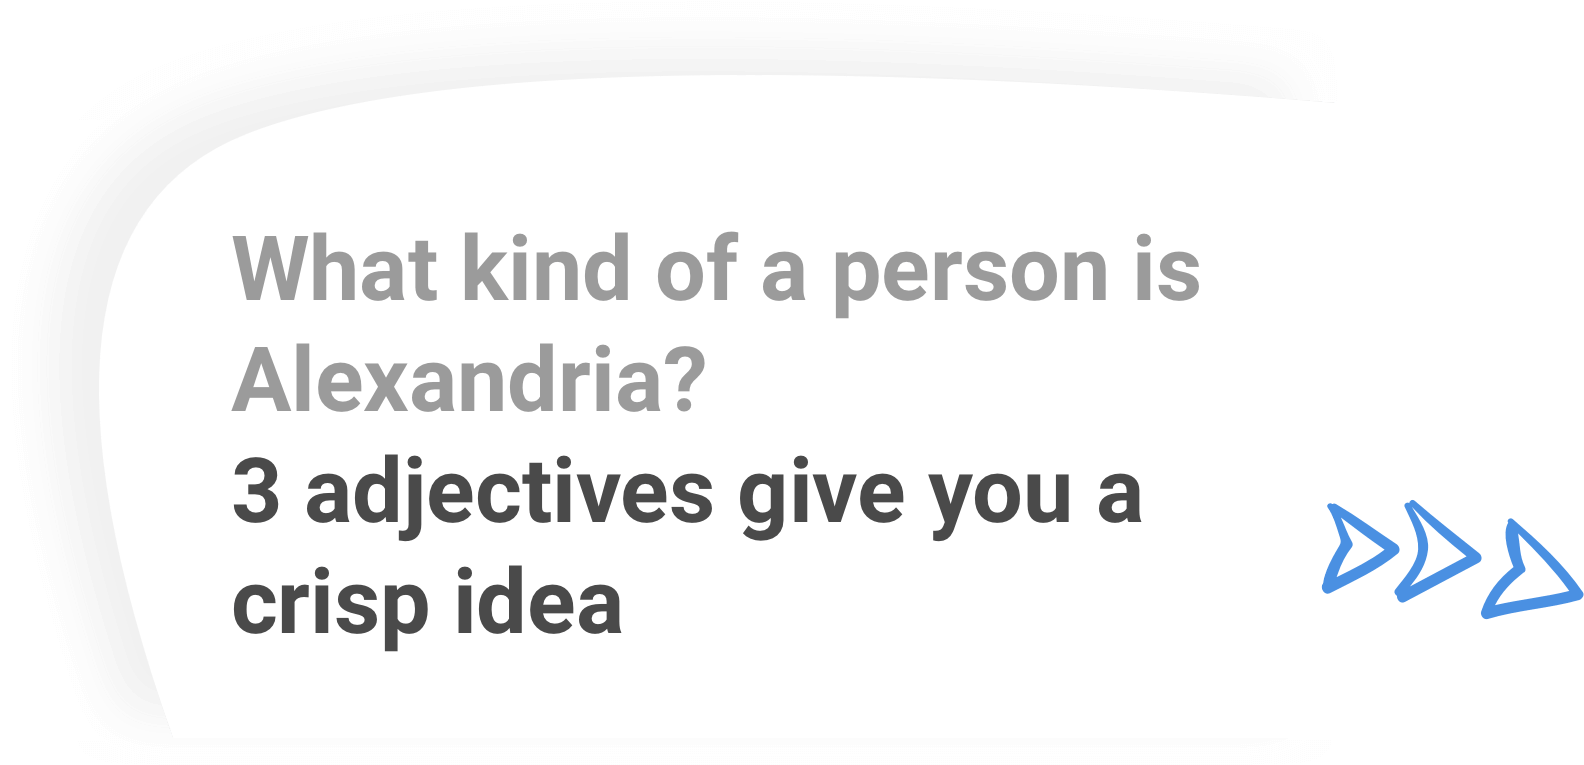 What kind of a person is Alexandria? 3 adjectives give you a crisp idea